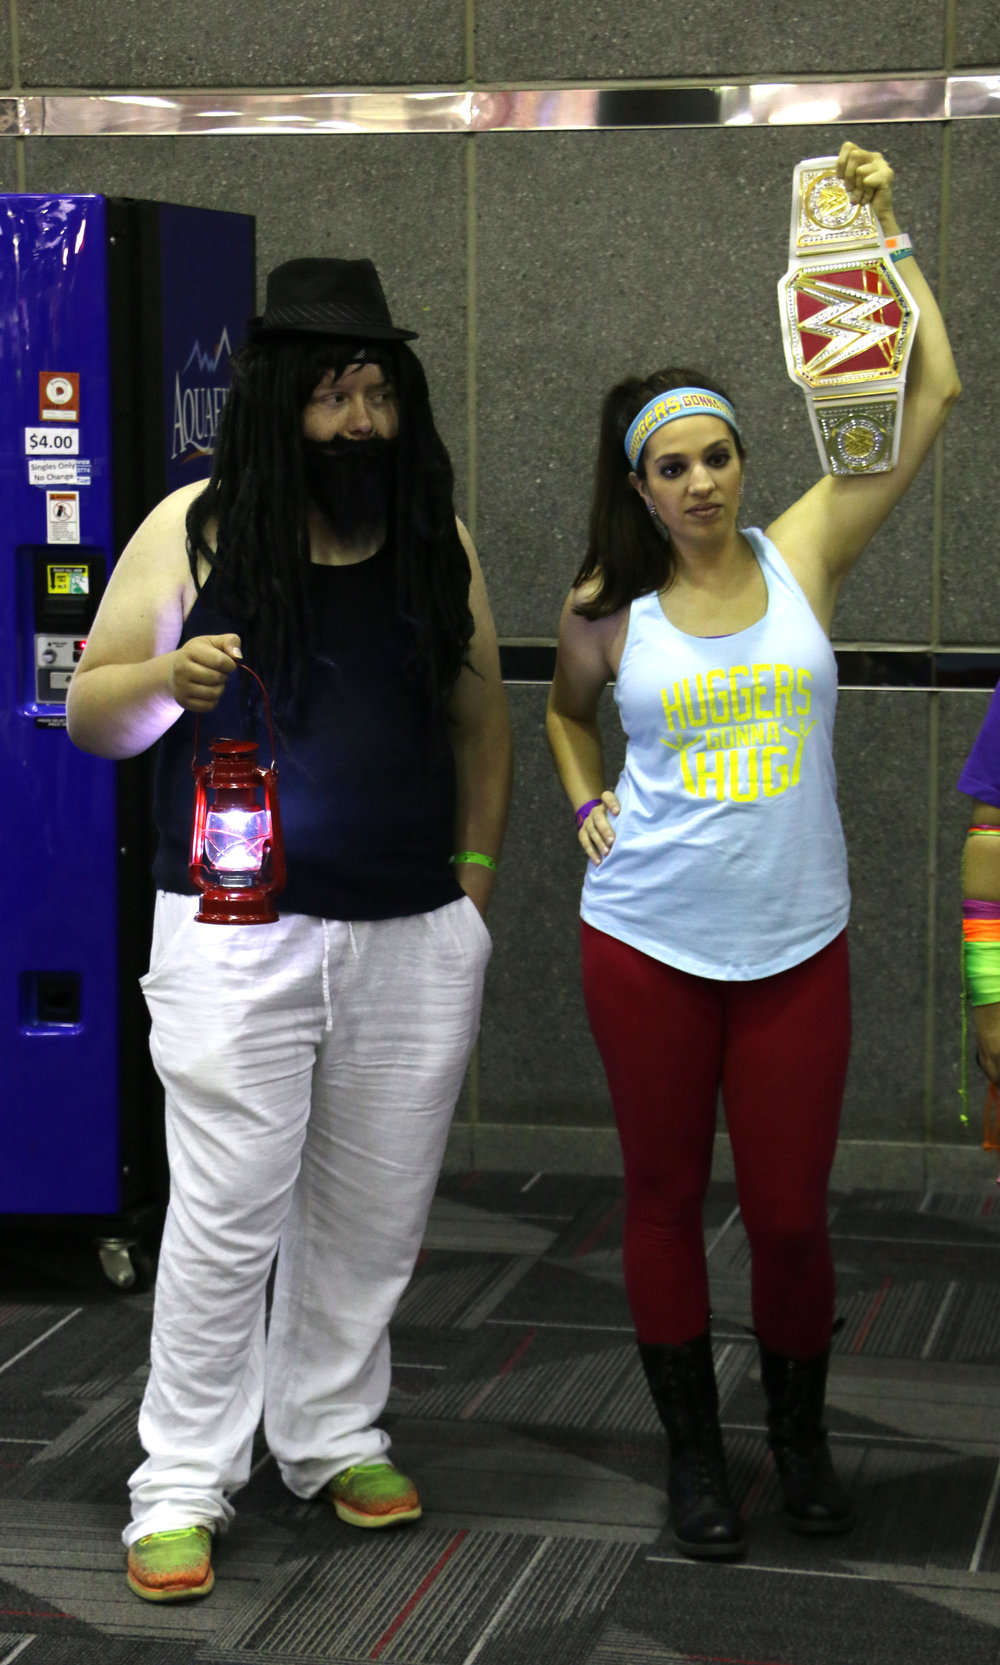 Bray Wyatt, left, and Bayley cosplayers pose in the lobby.